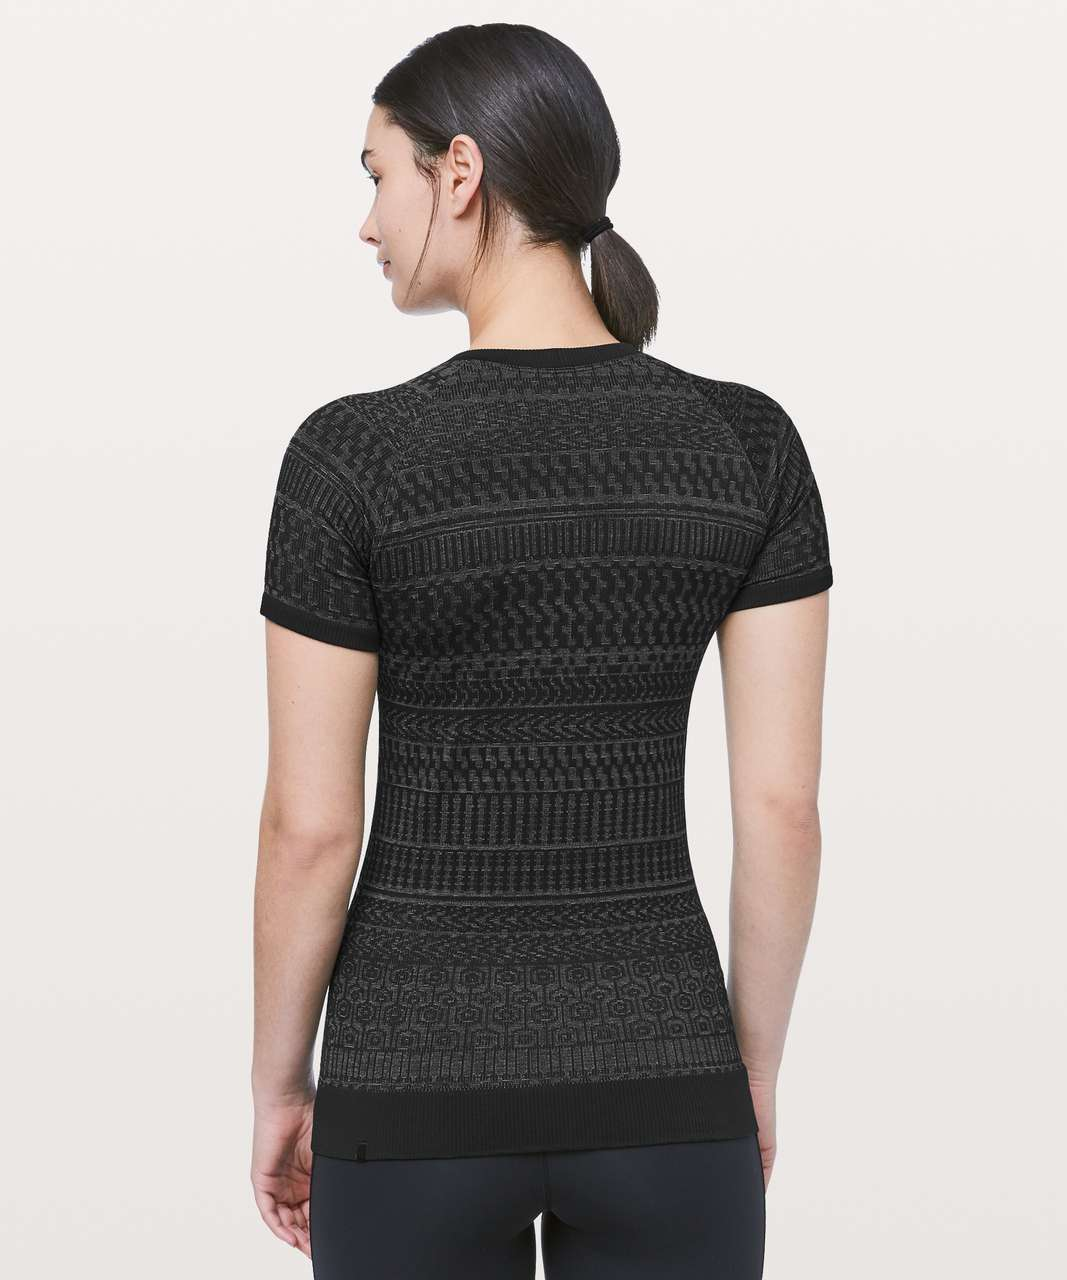 Lululemon Rest Less Short Sleeve - Black / White